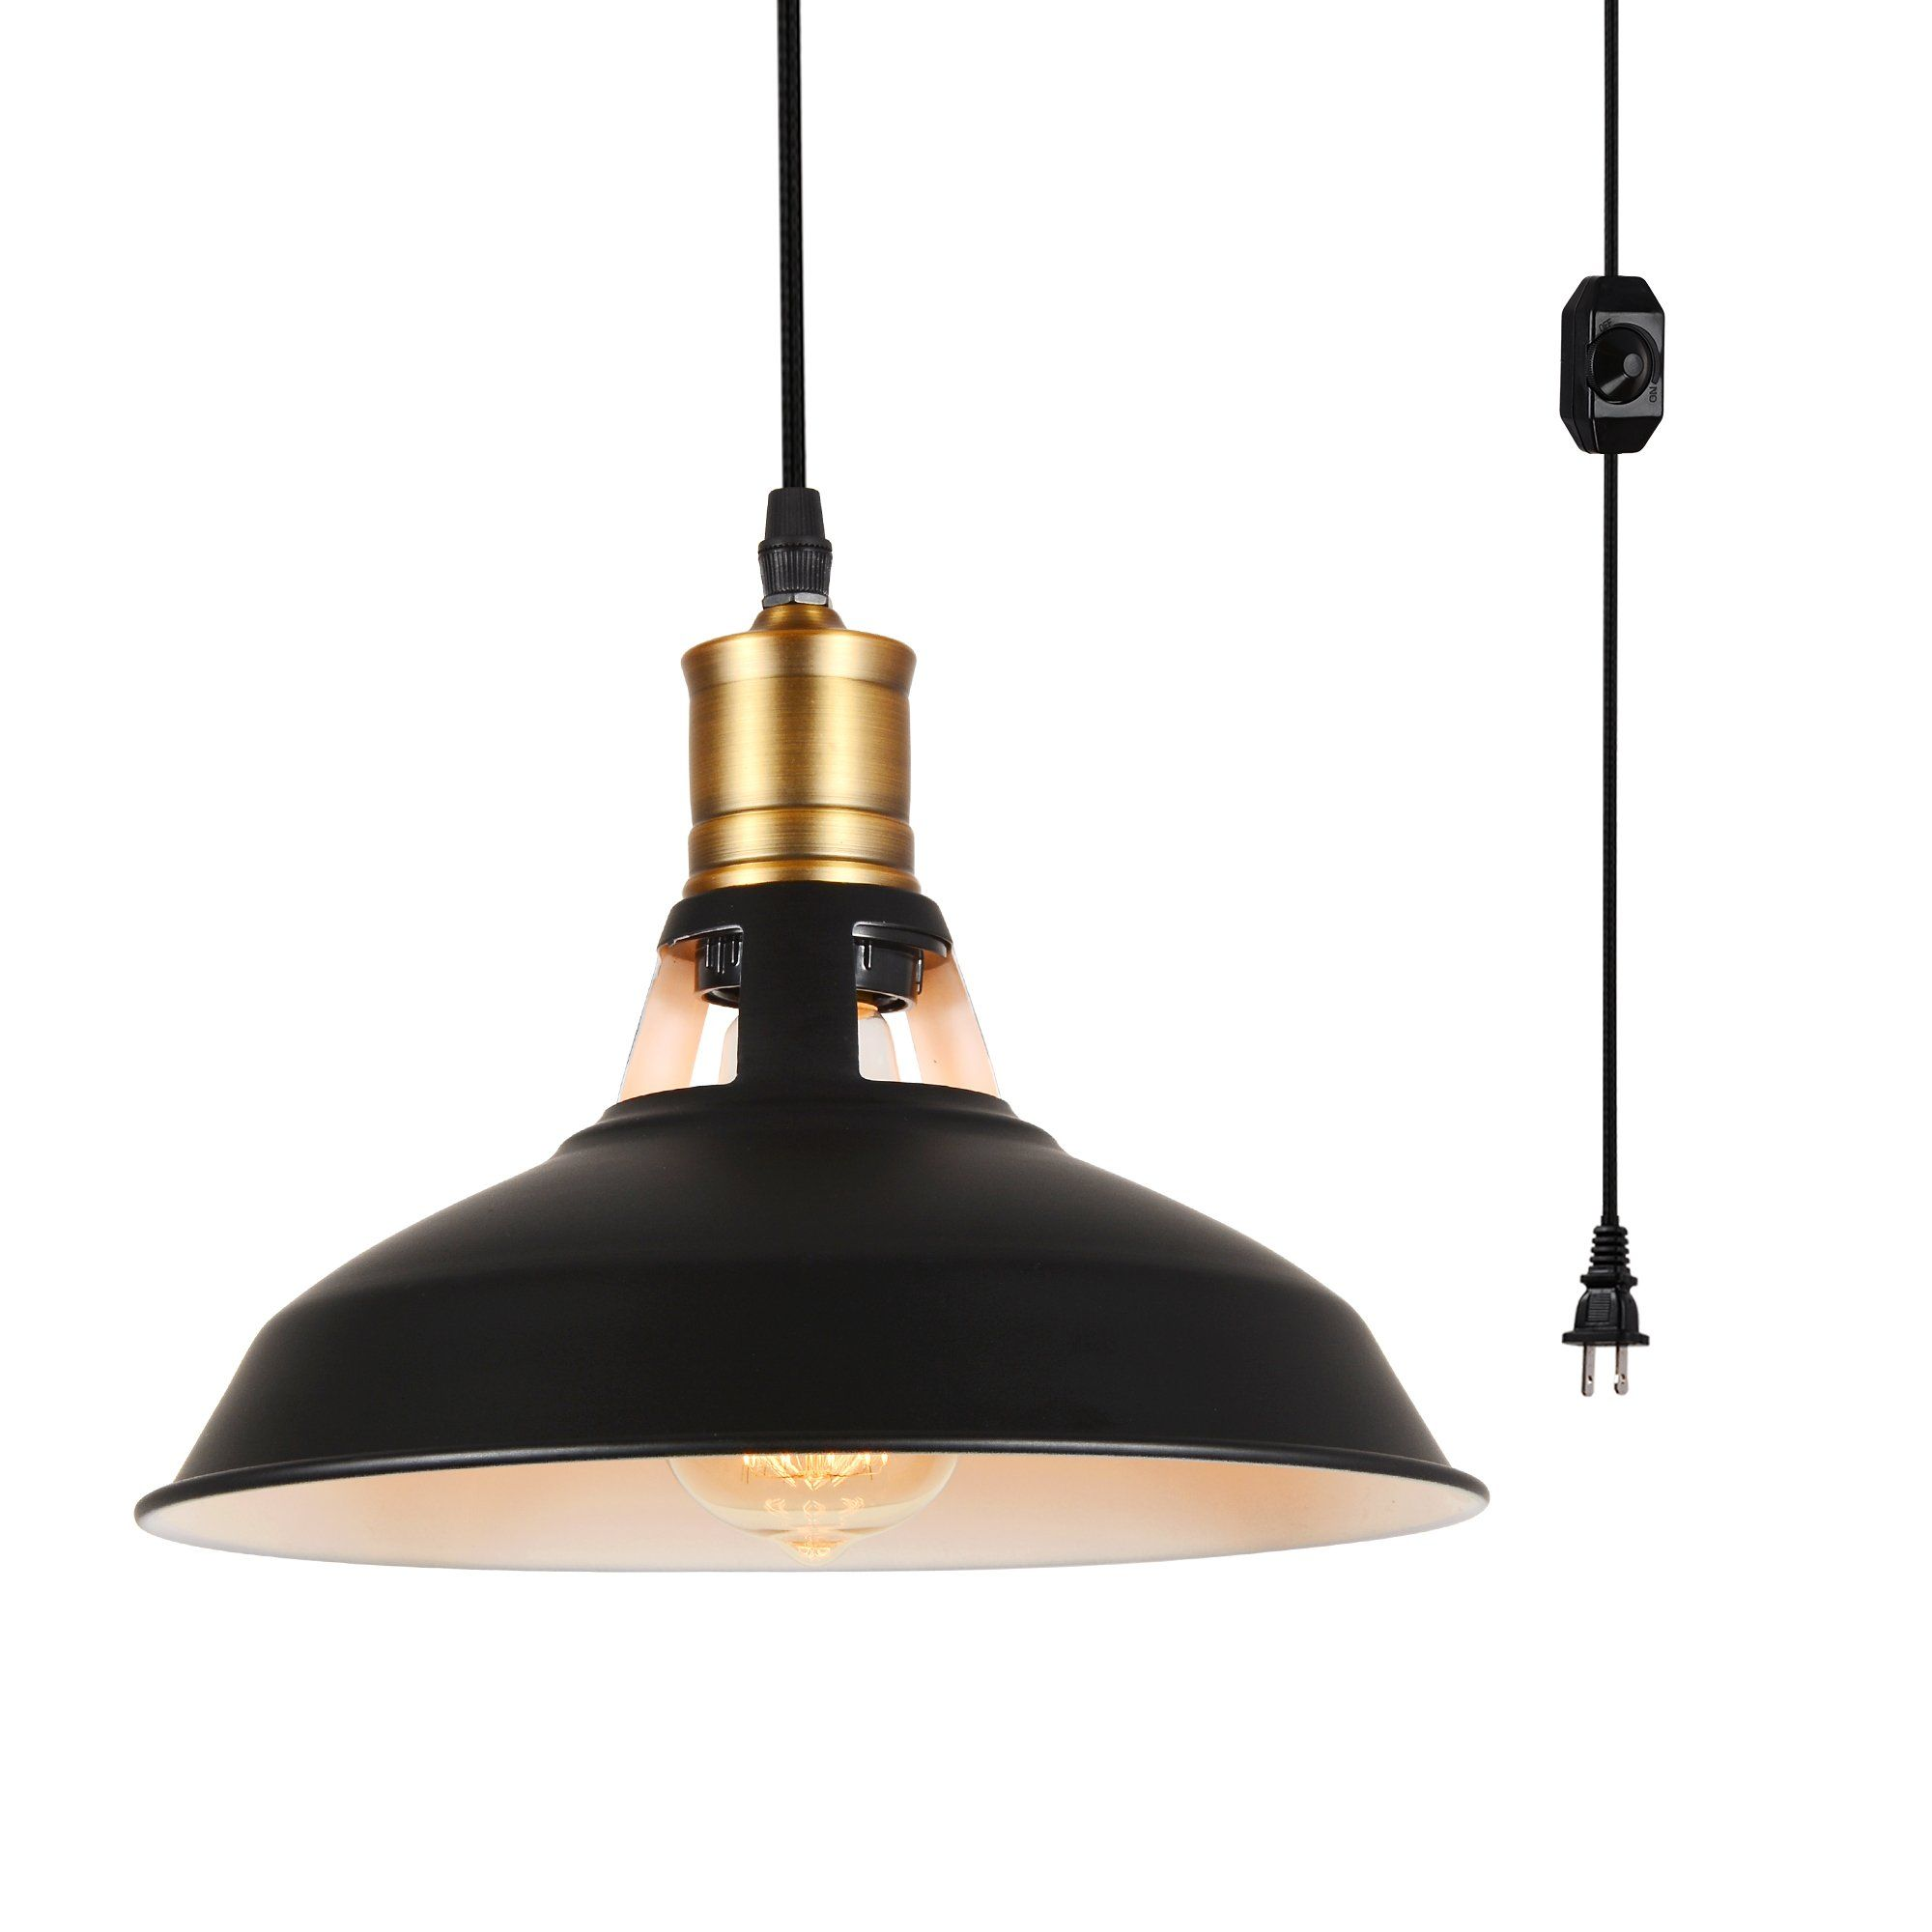 Hmvpl Industrial Plug In Pendant Lighting Fixtures With Long Hanging Cord And Dimmer Switch Vintage In 2020 Pendant Light Fixtures Pendant Lighting Hanging Chandelier